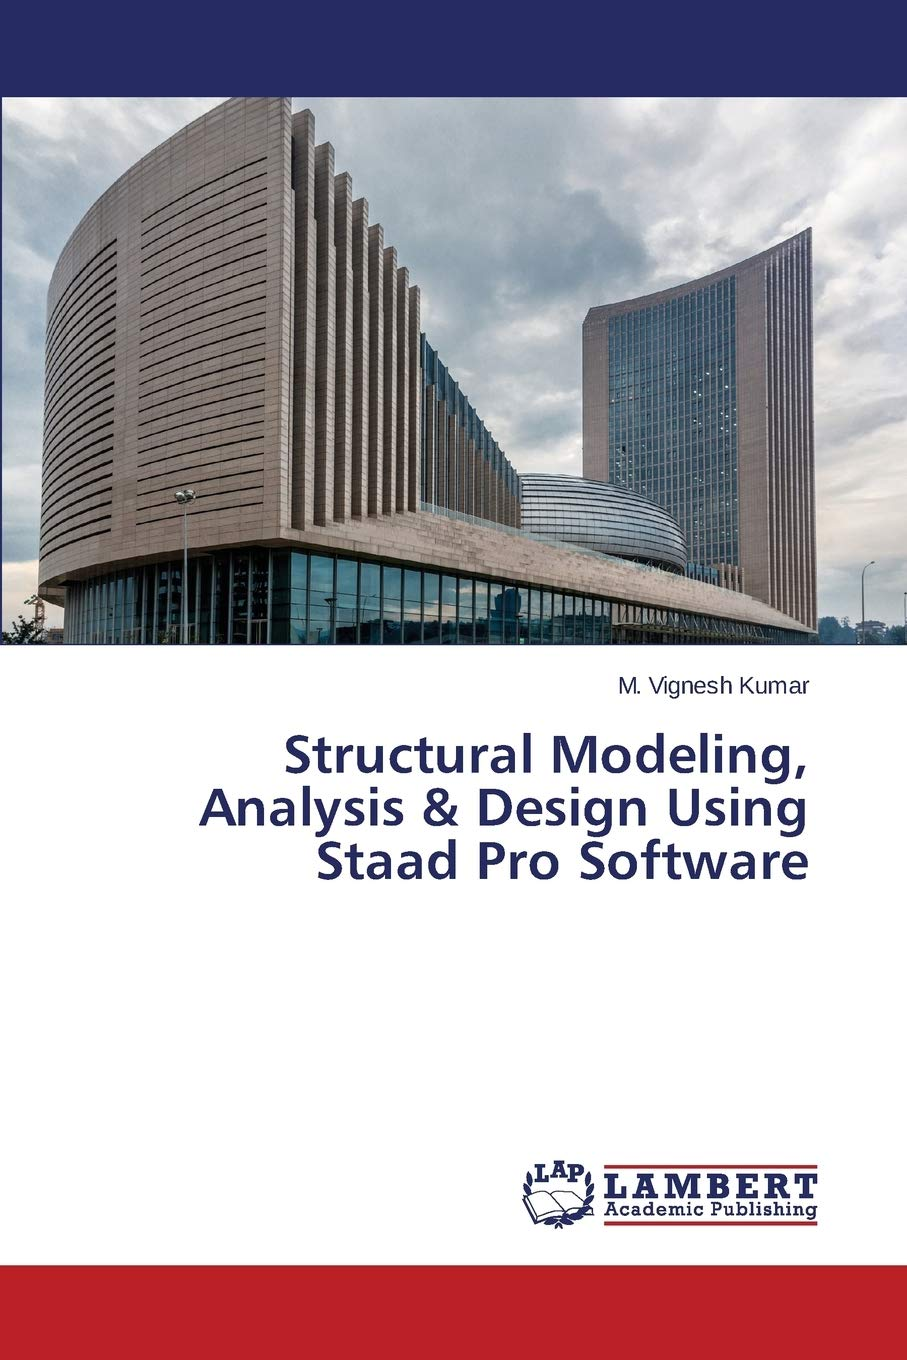 Structural Modeling Analysis Design Using Staad Pro Software Vignesh Kumar M 9783848447671 Amazon Com Books